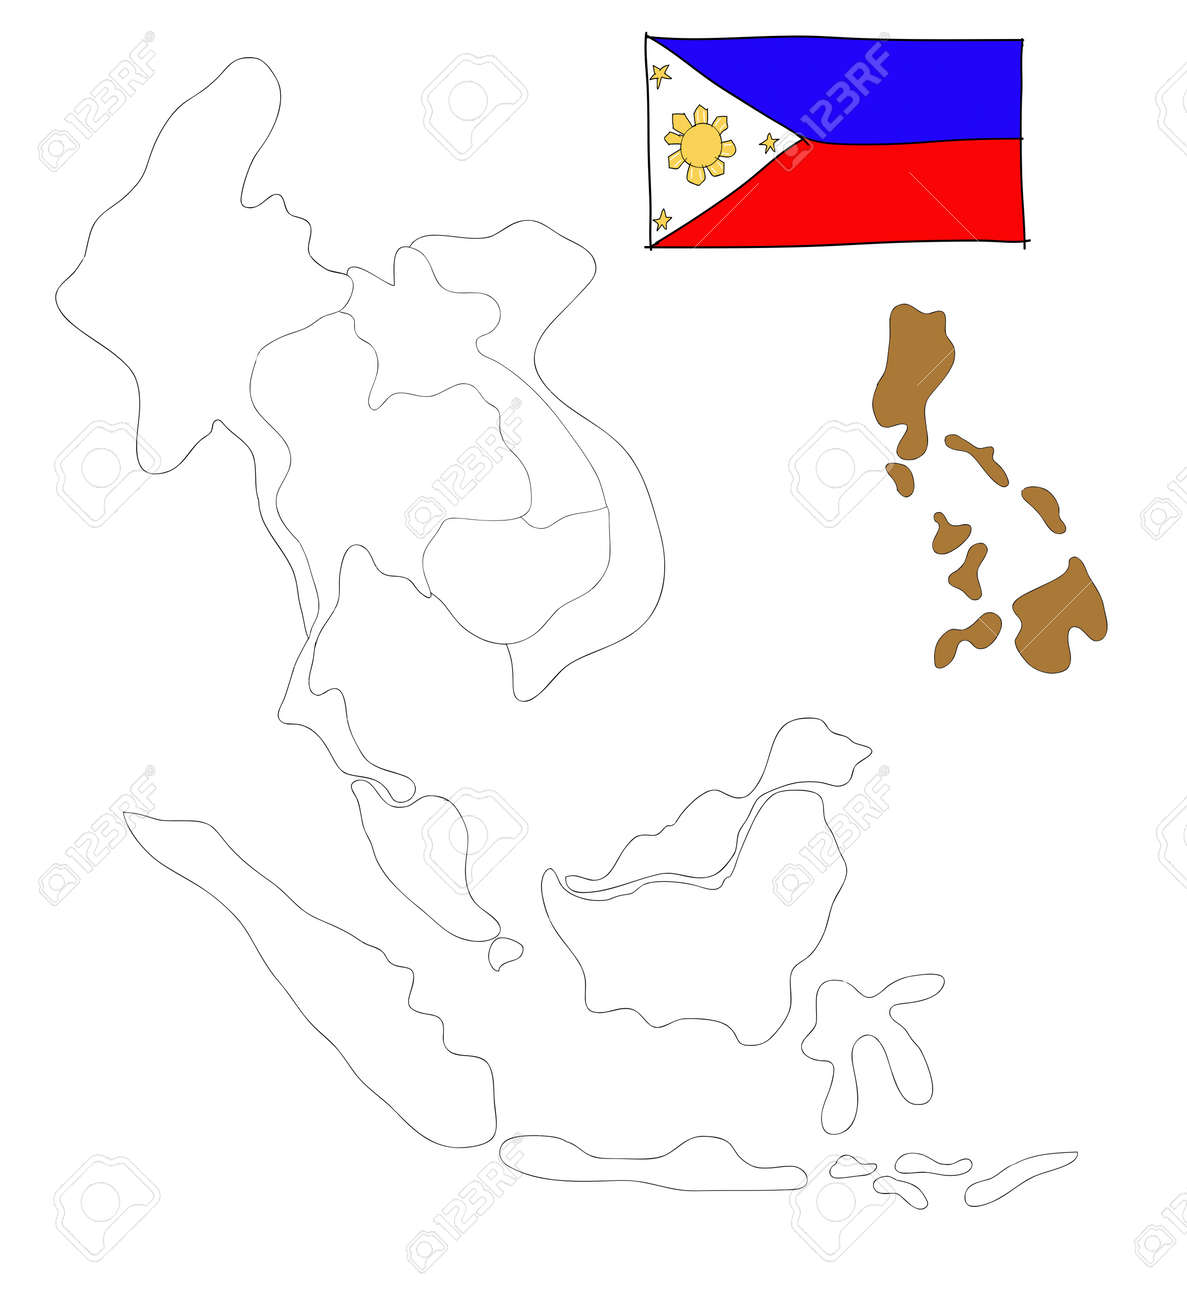 Drawing map of south east asia countries that will be member drawing map of south east asia countries that will be member of aec with philippines flag buycottarizona Images